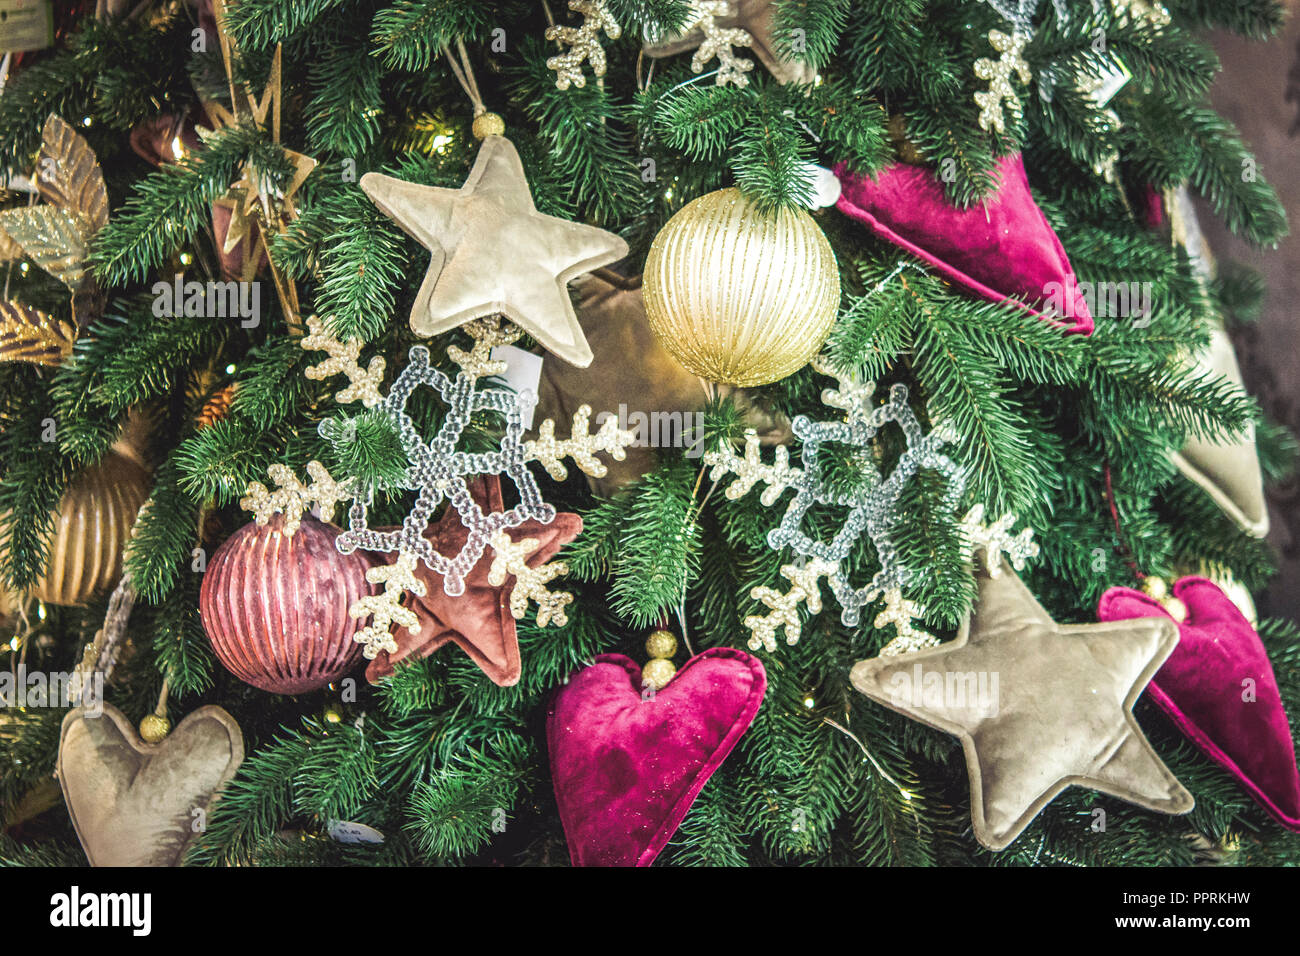 Different decorative Christmas-tree toys close-up, decorations for Christmas tree, green spruce branch needles. Winter Christmas New Year background. - Stock Image